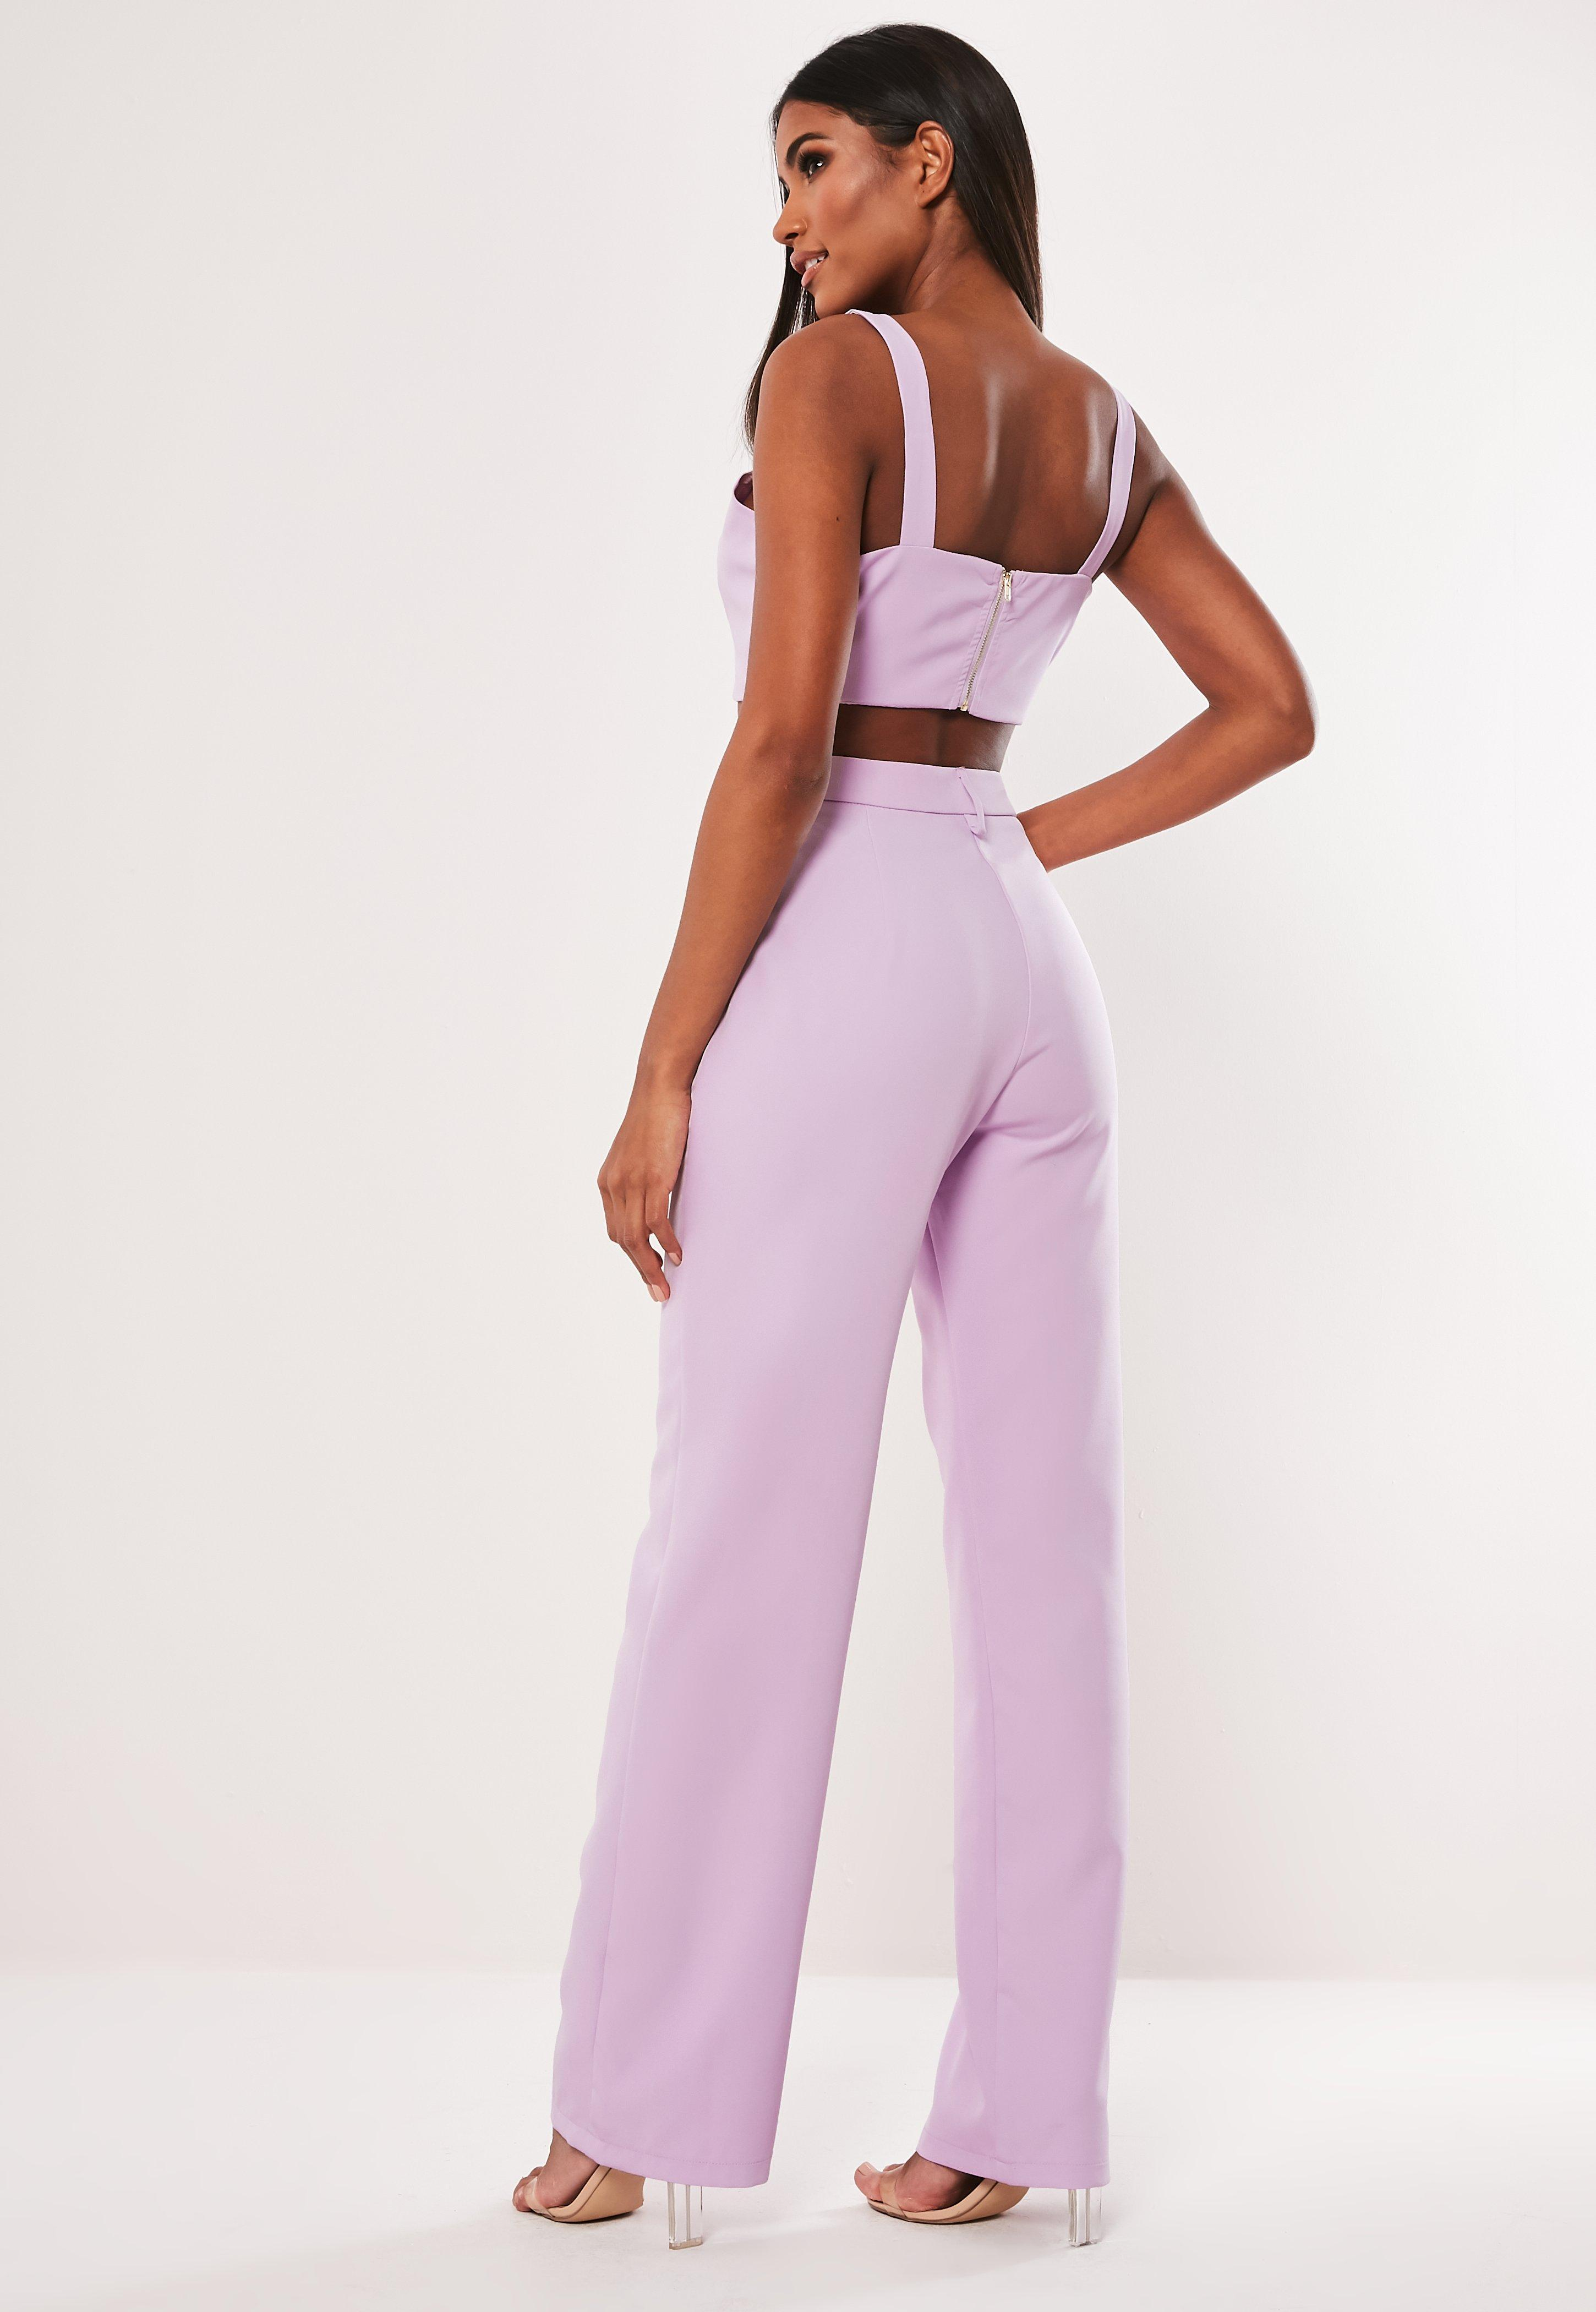 dea37650f71c Lyst - Missguided Lilac Co Ord Straight Leg Pants in Purple